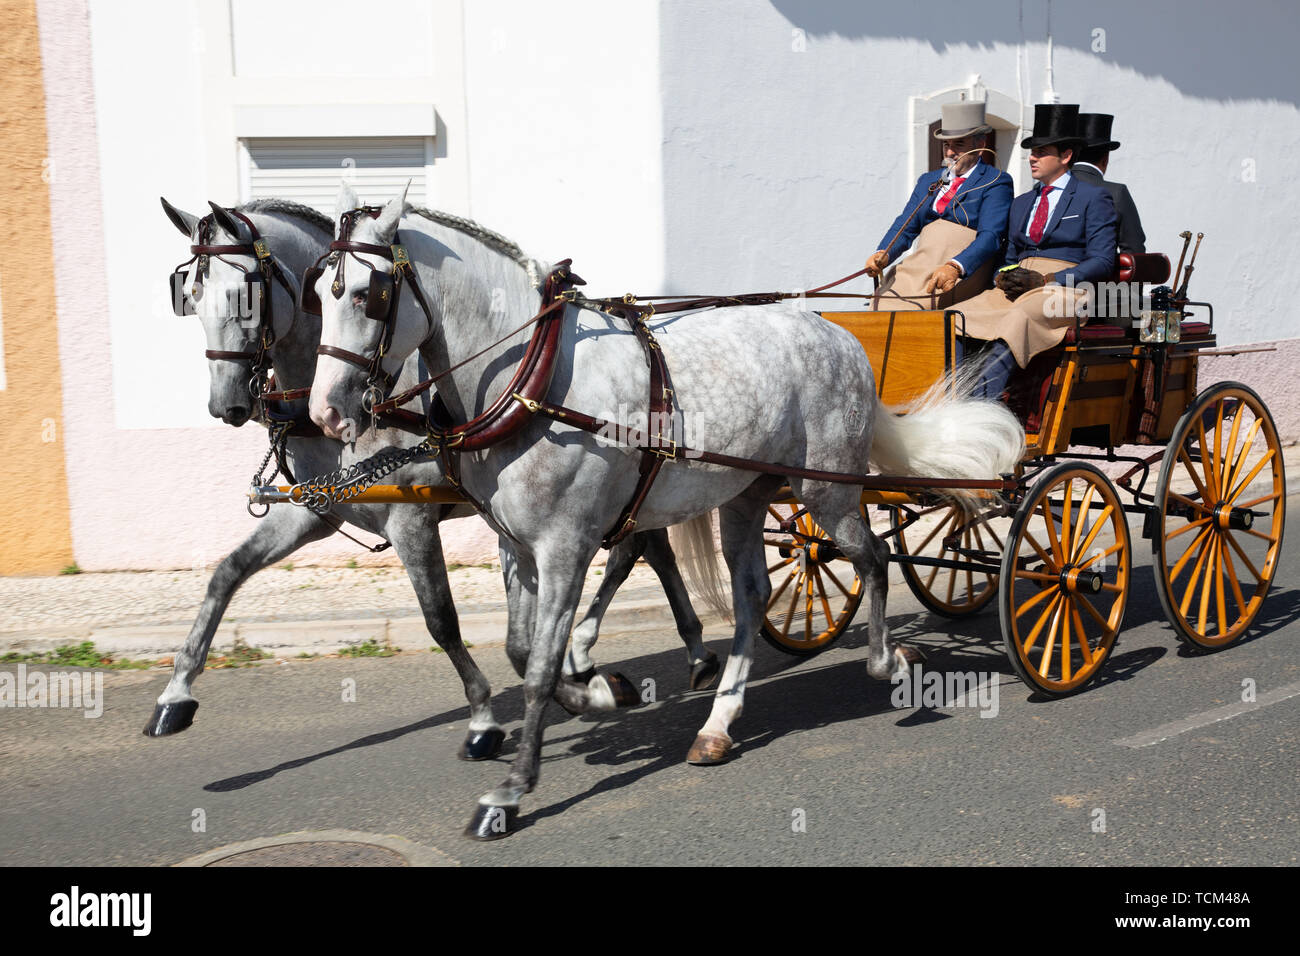 Two Lusitano horses horse-drawn carriage in  Golegã. This region has the oldest and most prestigious Lusitano horse breeders in Portugal.  An annual N - Stock Image